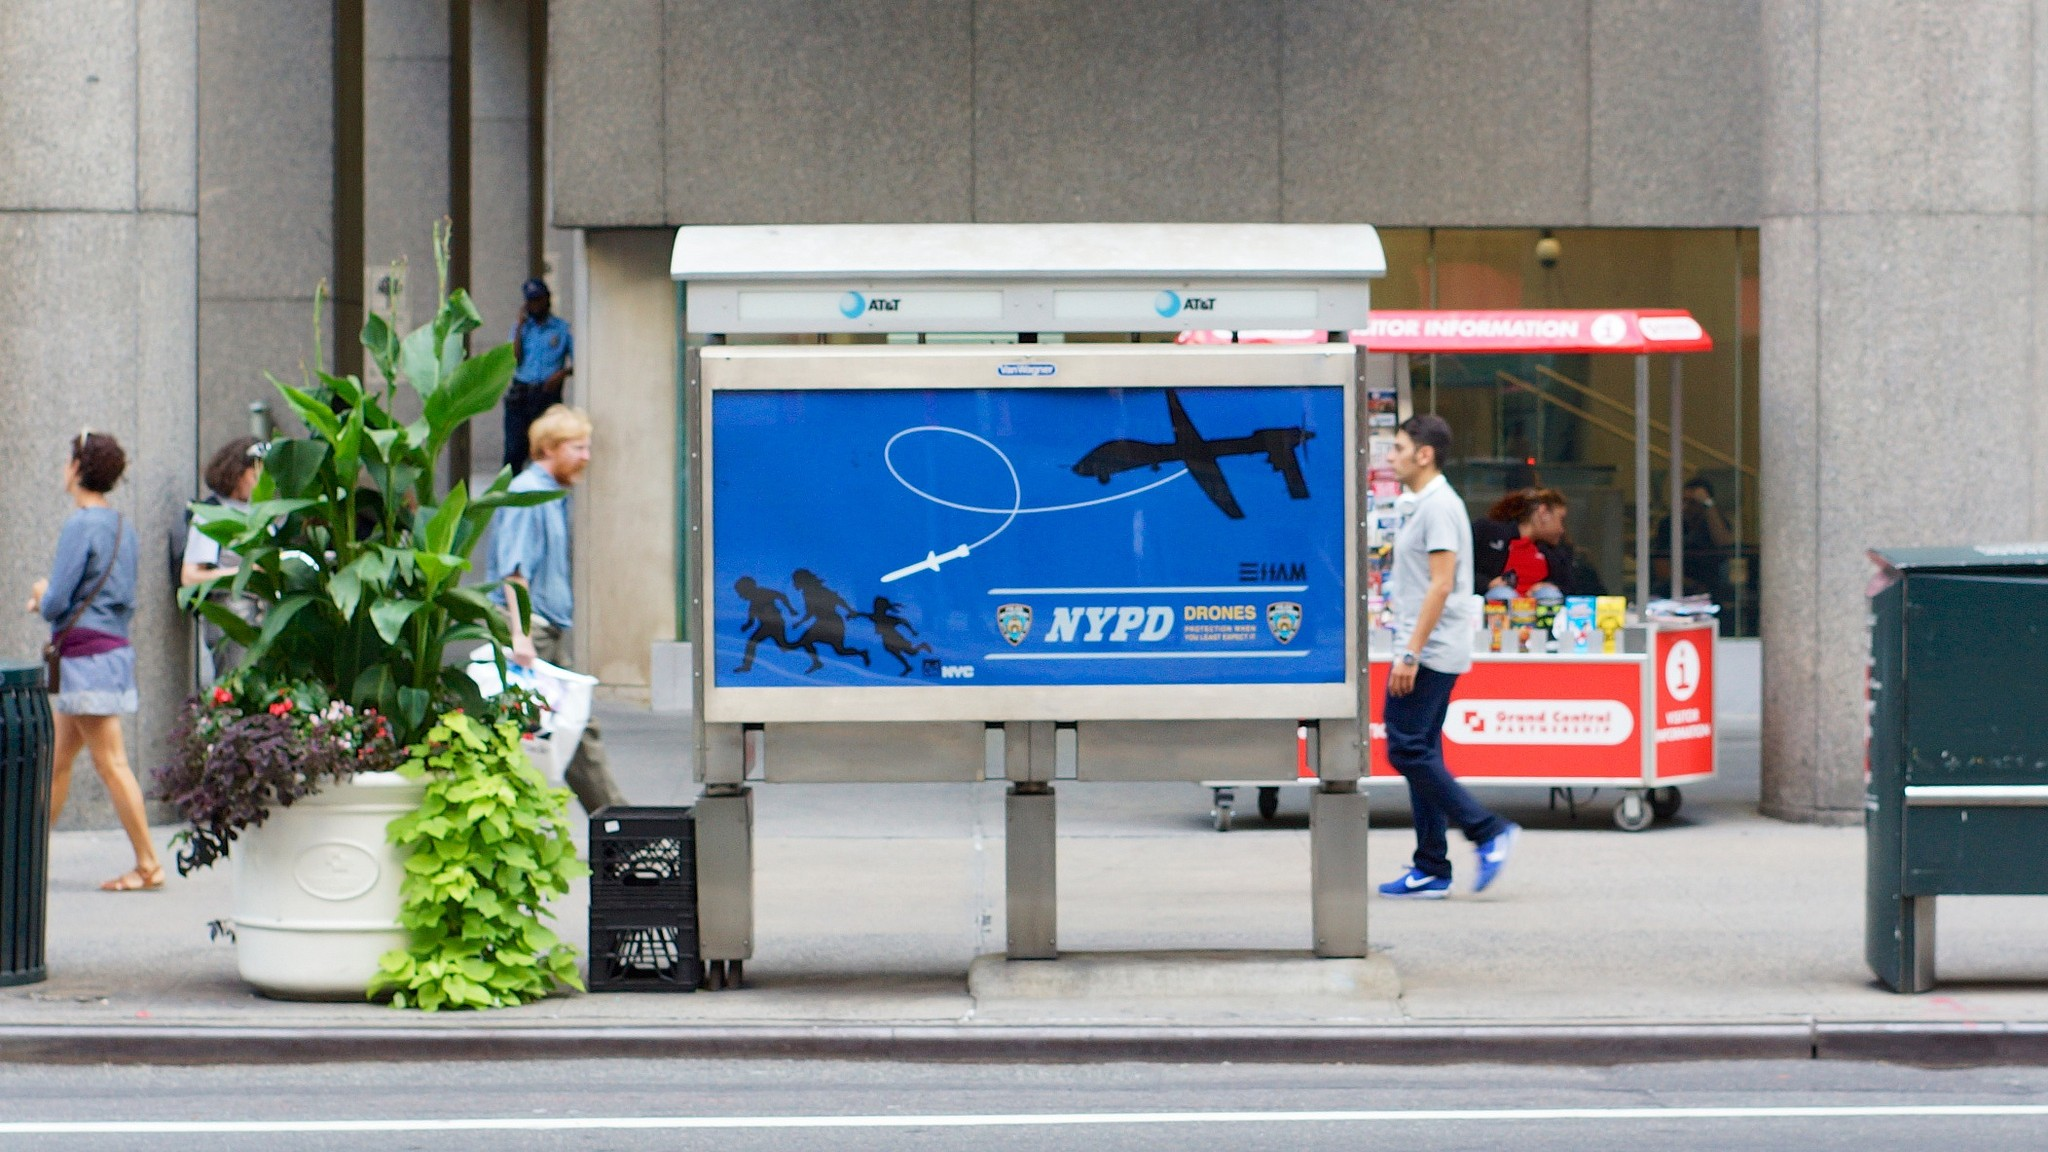 I've Spent 2.5 Years Trying to Get the NYPD to Talk About Its Drone Program